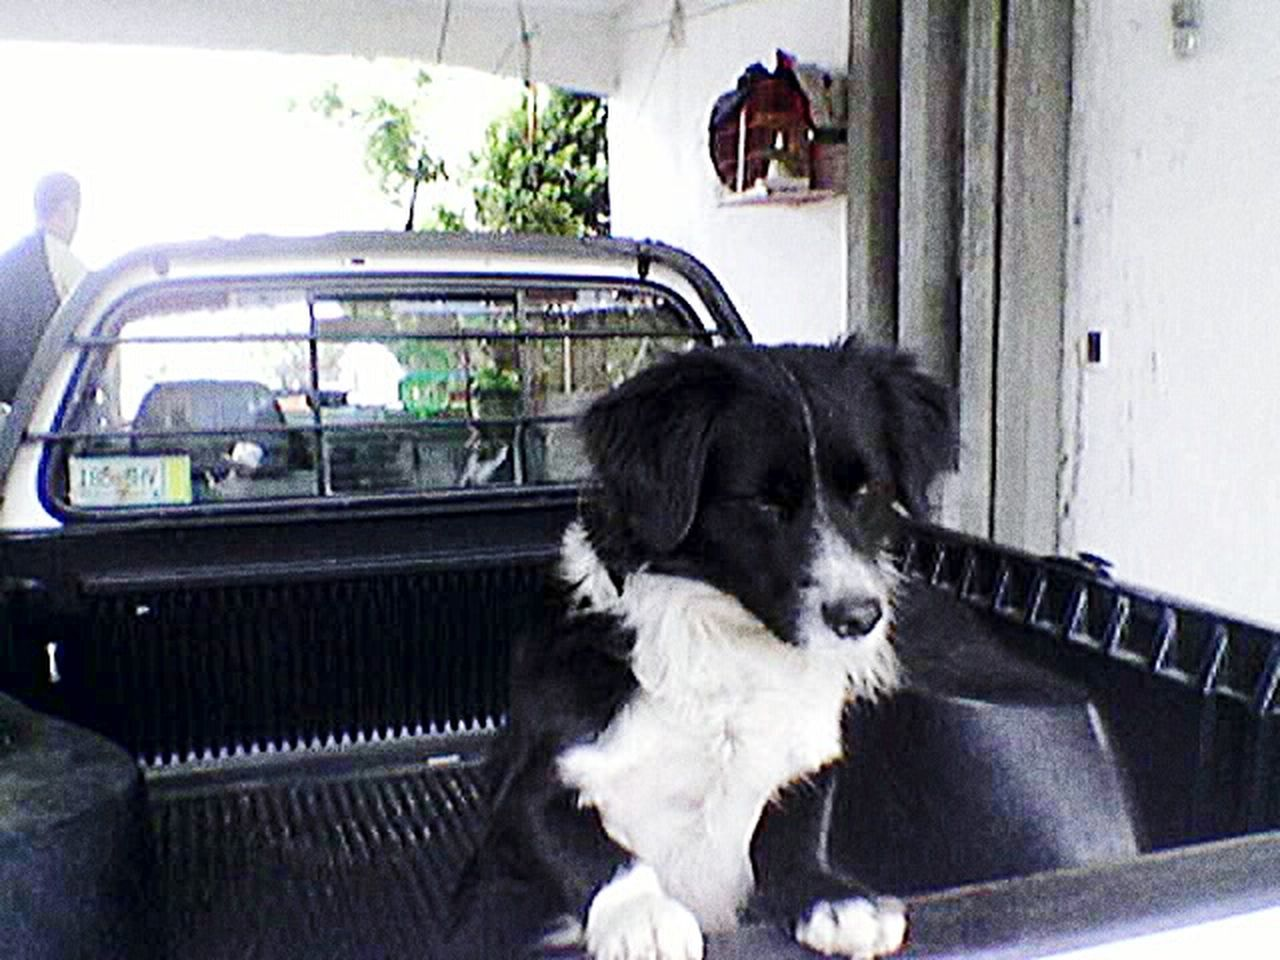 car, pets, dog, border collie, transportation, domestic animals, sitting, day, outdoors, mammal, animal themes, no people